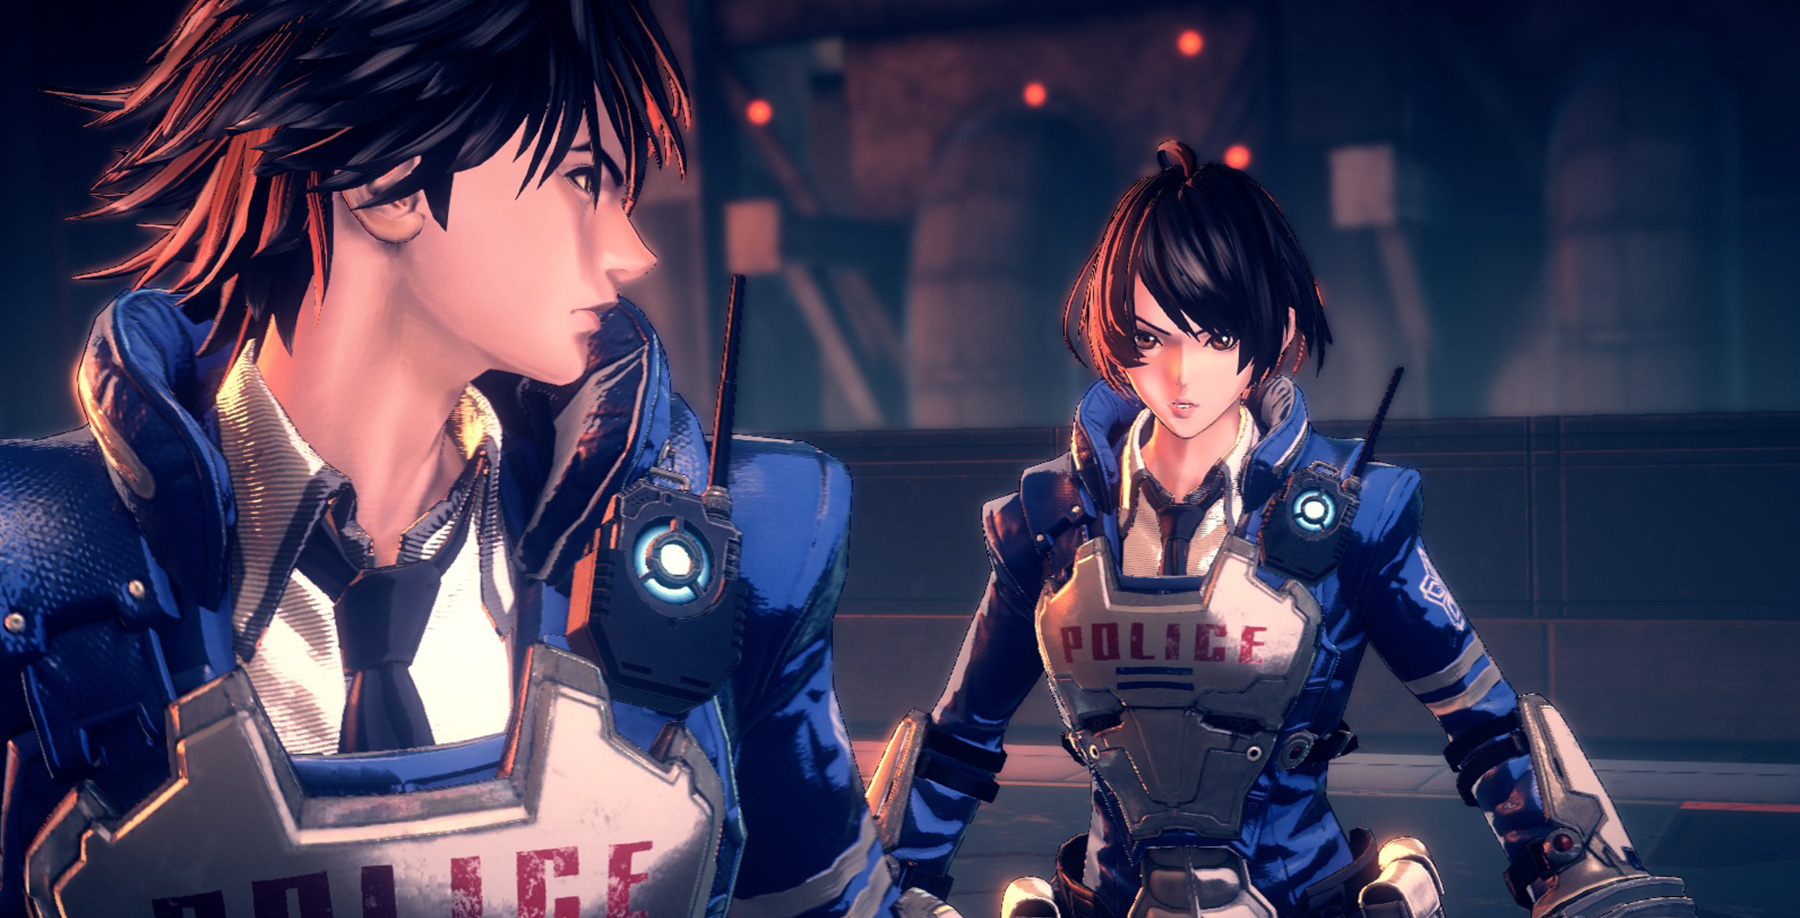 Astral Chain devs on original plan for Legions, protagonists weren't always twins, more